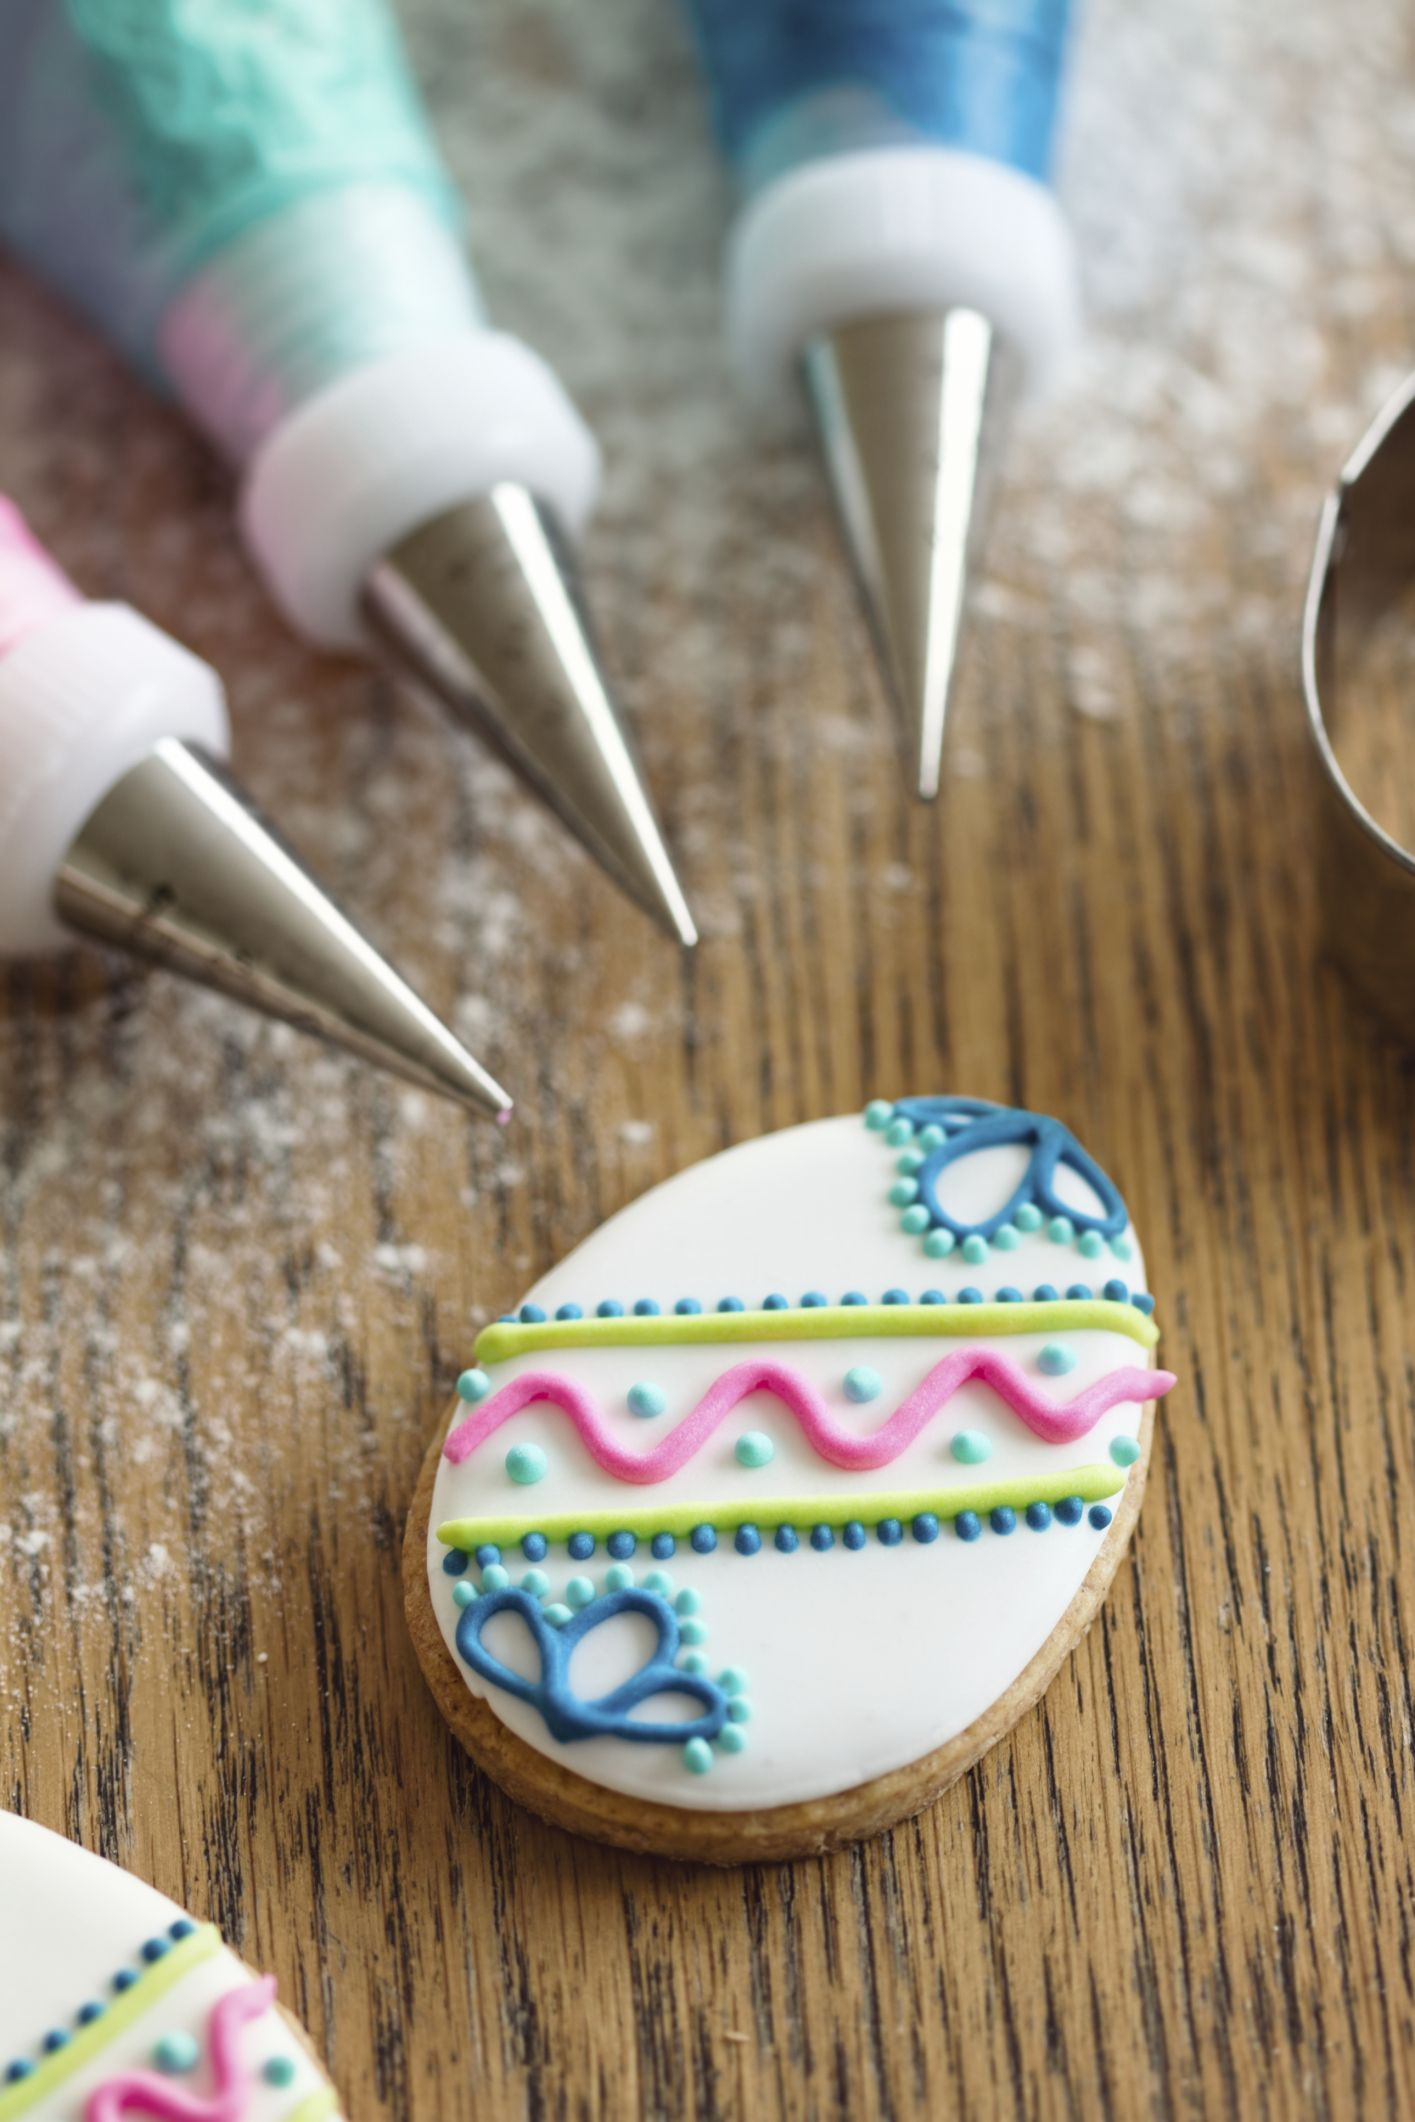 Royal icing recipes for cakes